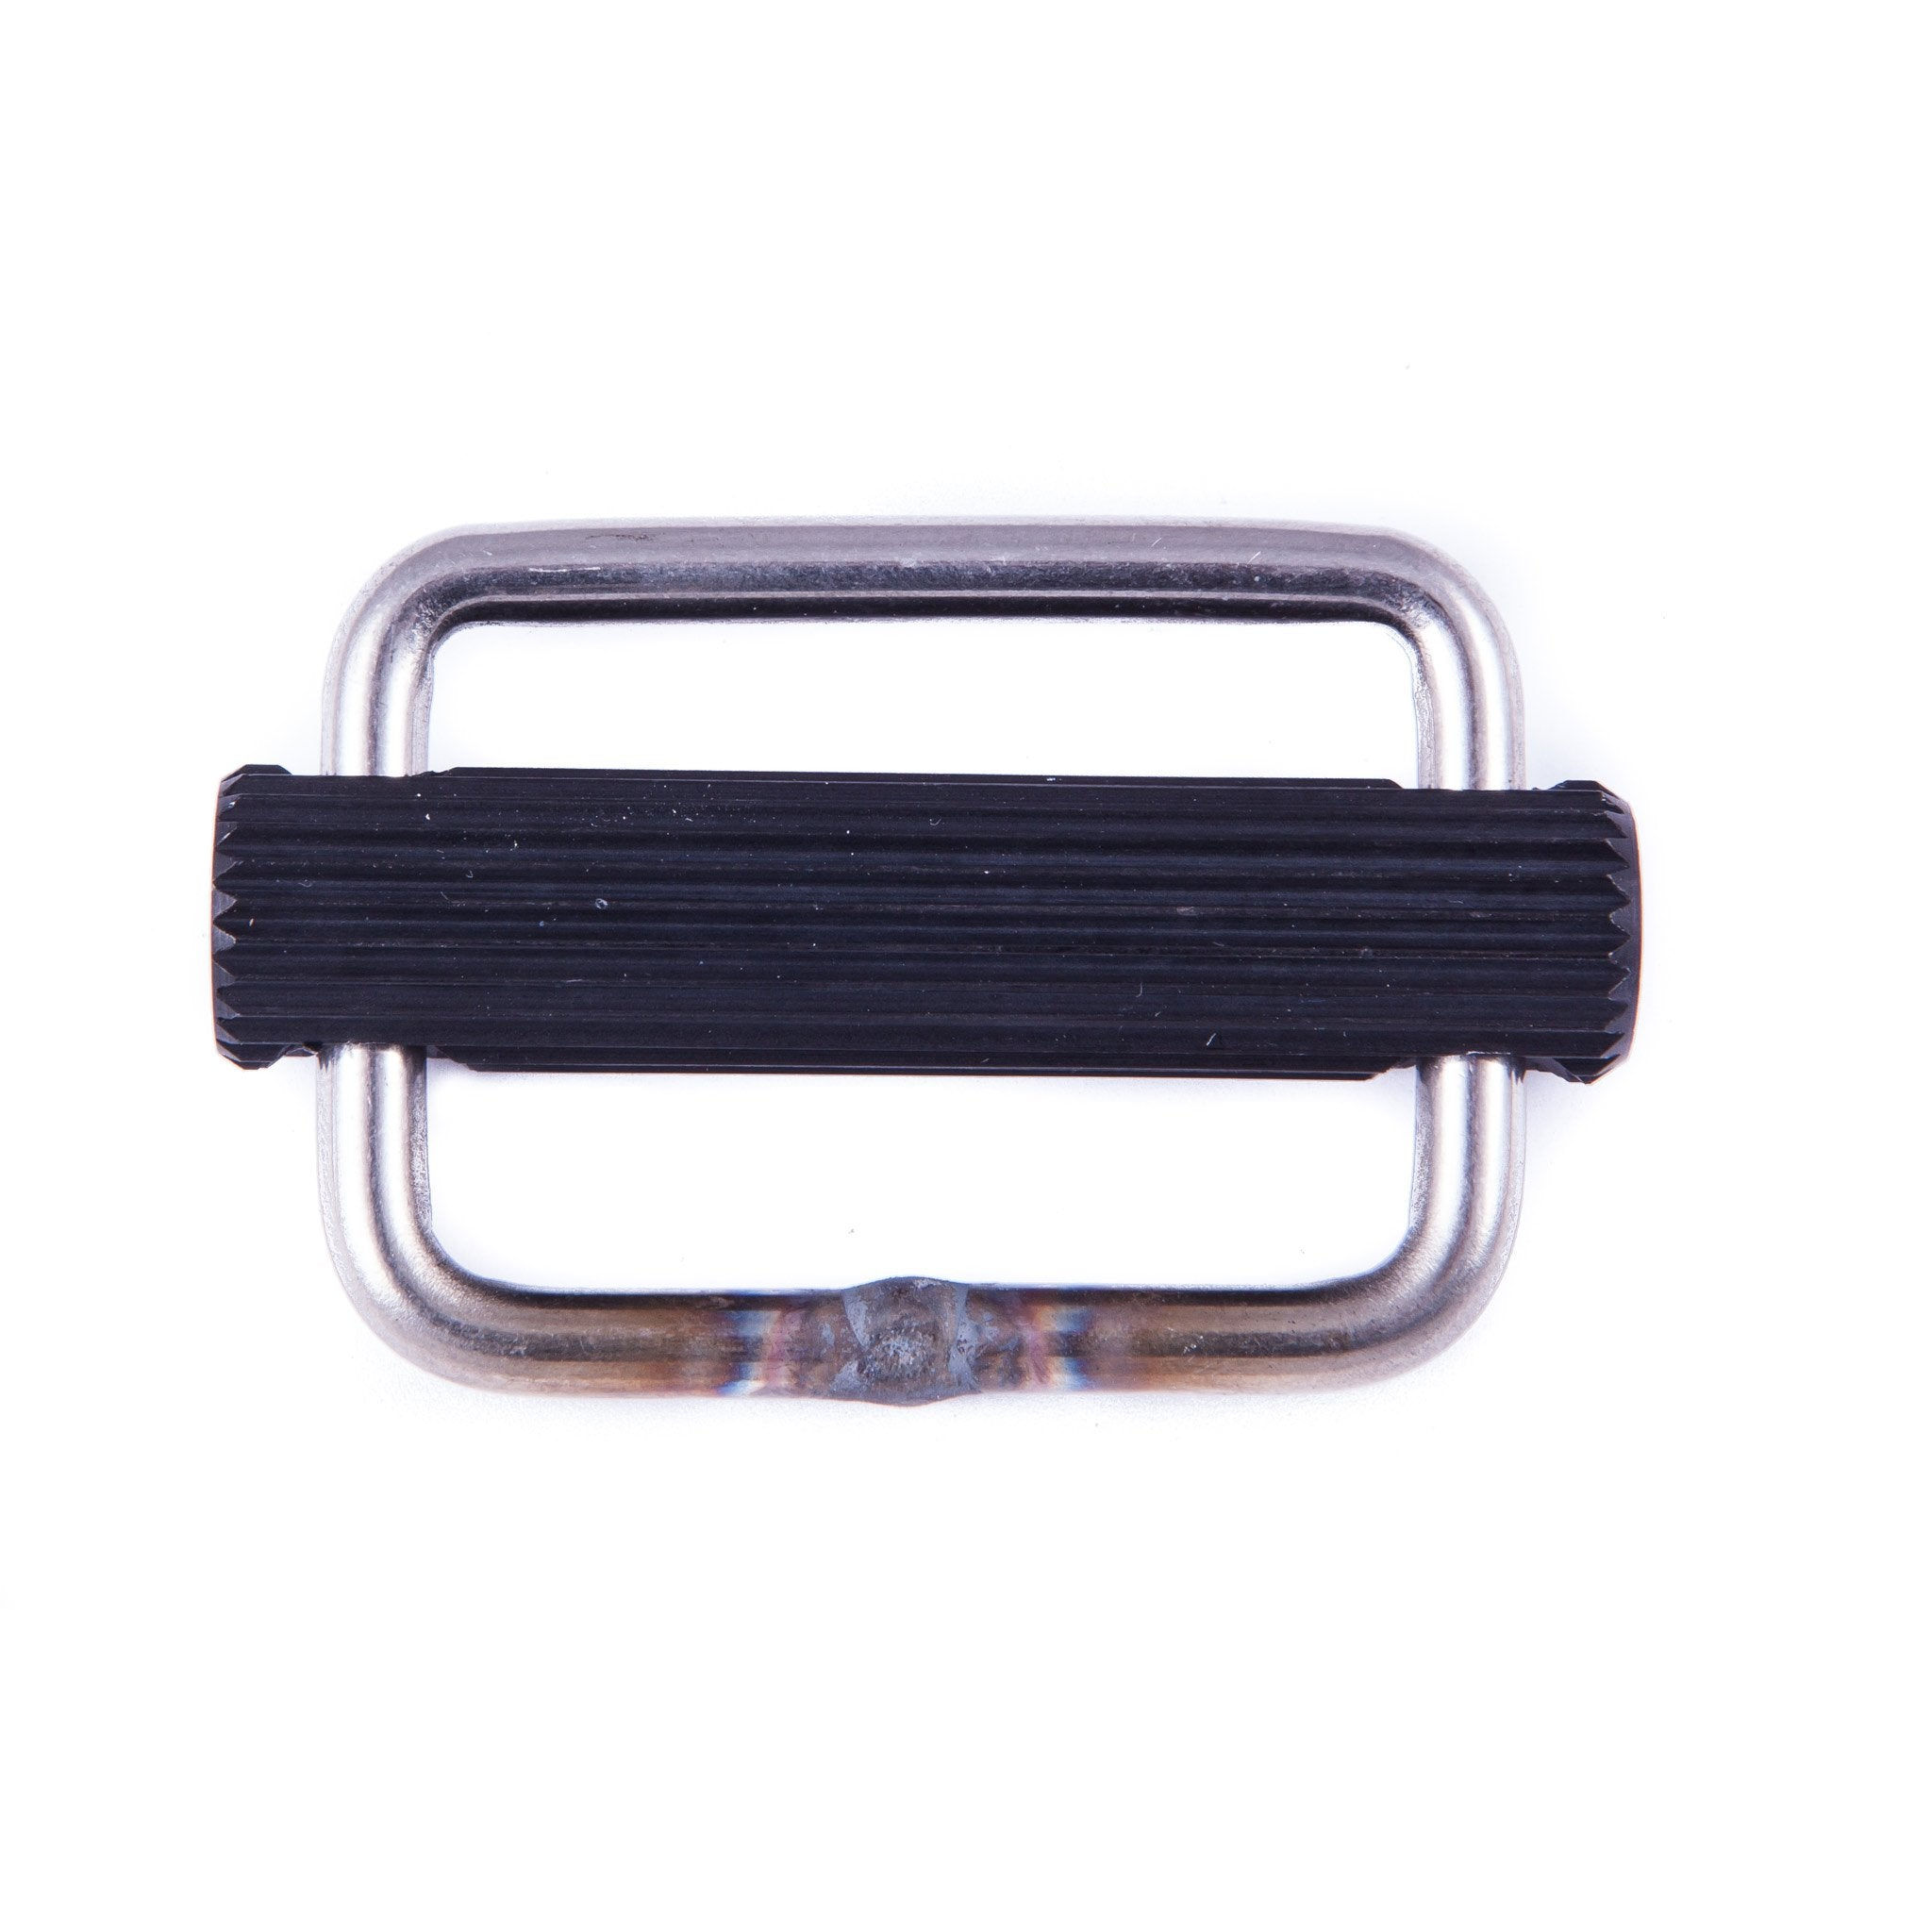 Sliding Bar Buckle - Arthur Beale